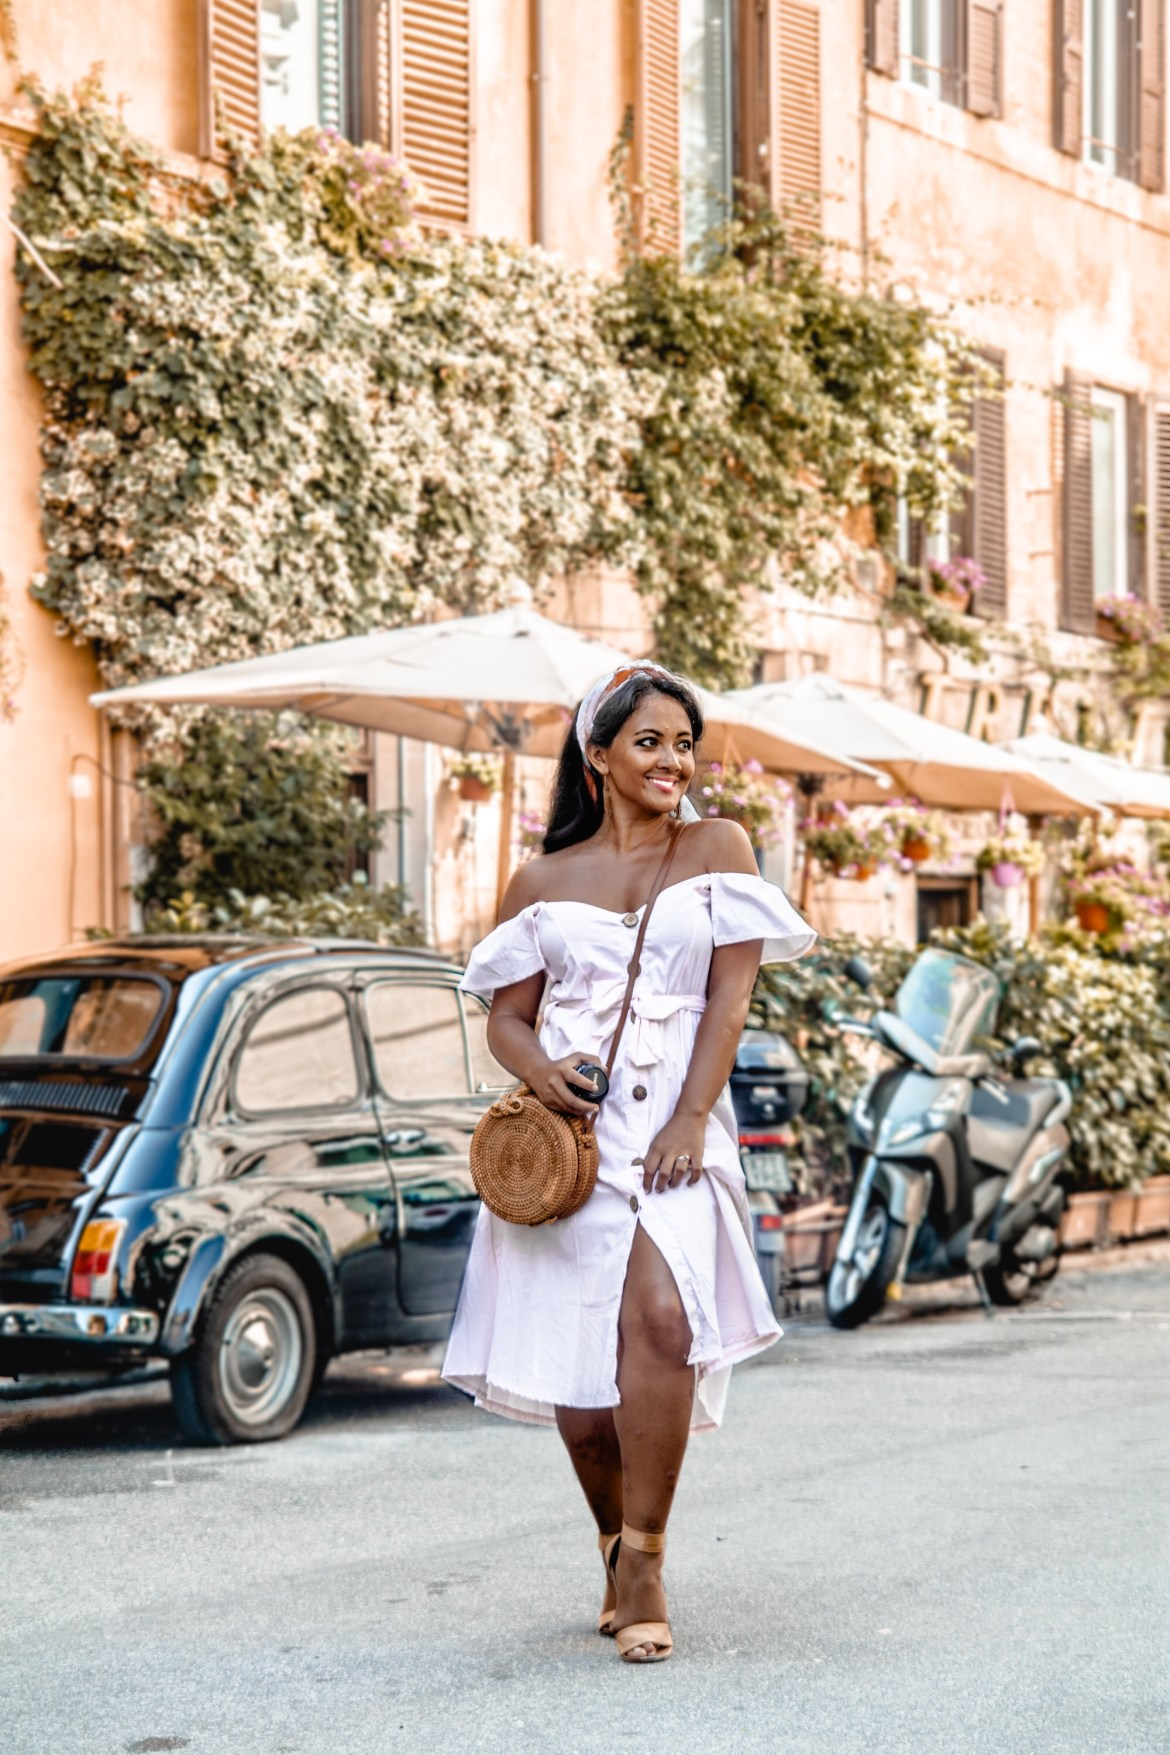 How To Wear Off Shoulder Dress Light Blush Pink Button Down Dress Rattan Straw Basket Bag Flat Sandal Headwrap Paris Chic Style Fashion Lookbook Street Style ootd Outfit Of The Day 4